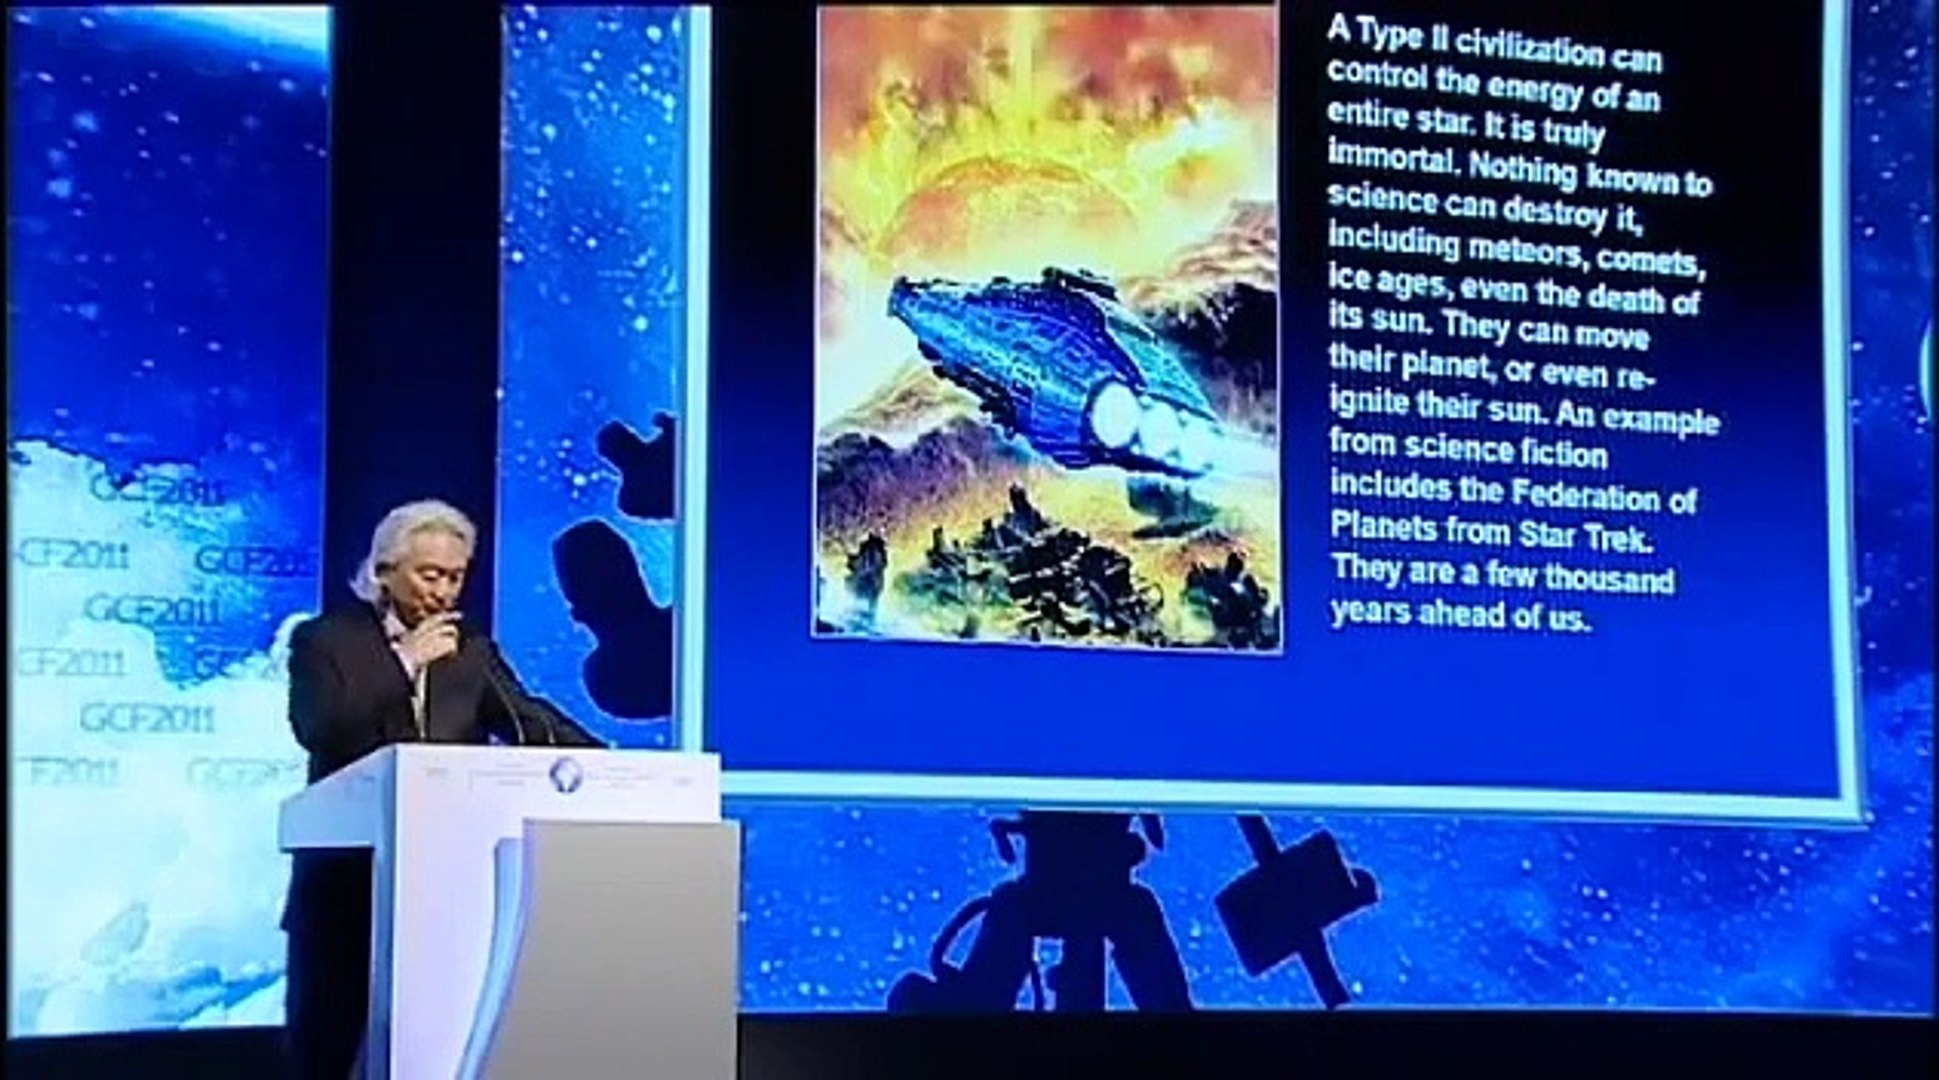 Michio Kaku - Contact Learning from Outer Space - GCF 2011 - 01-23